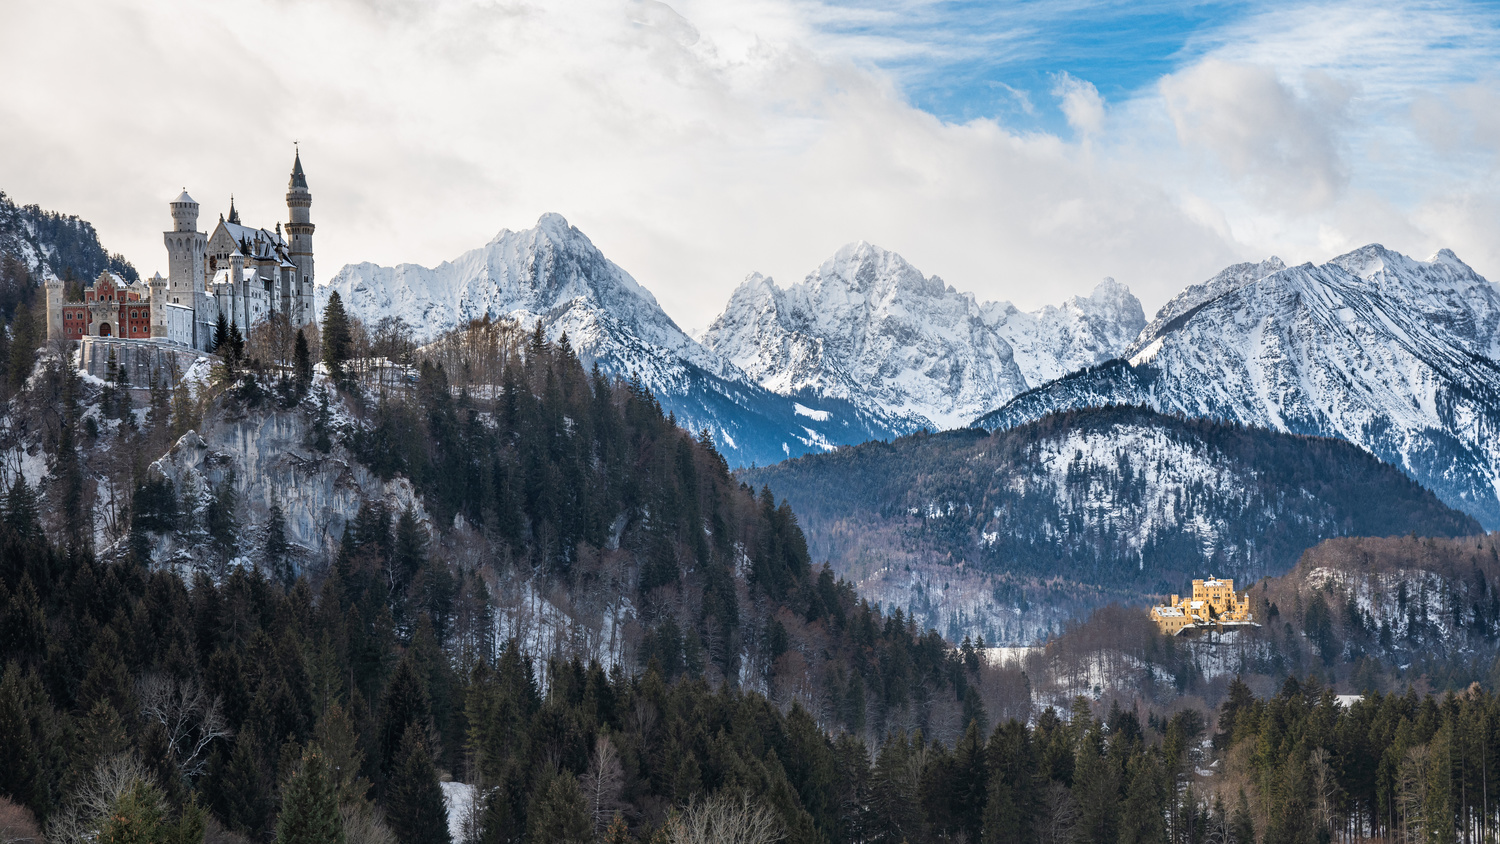 Narnia in Bavaria by Martin Weiss